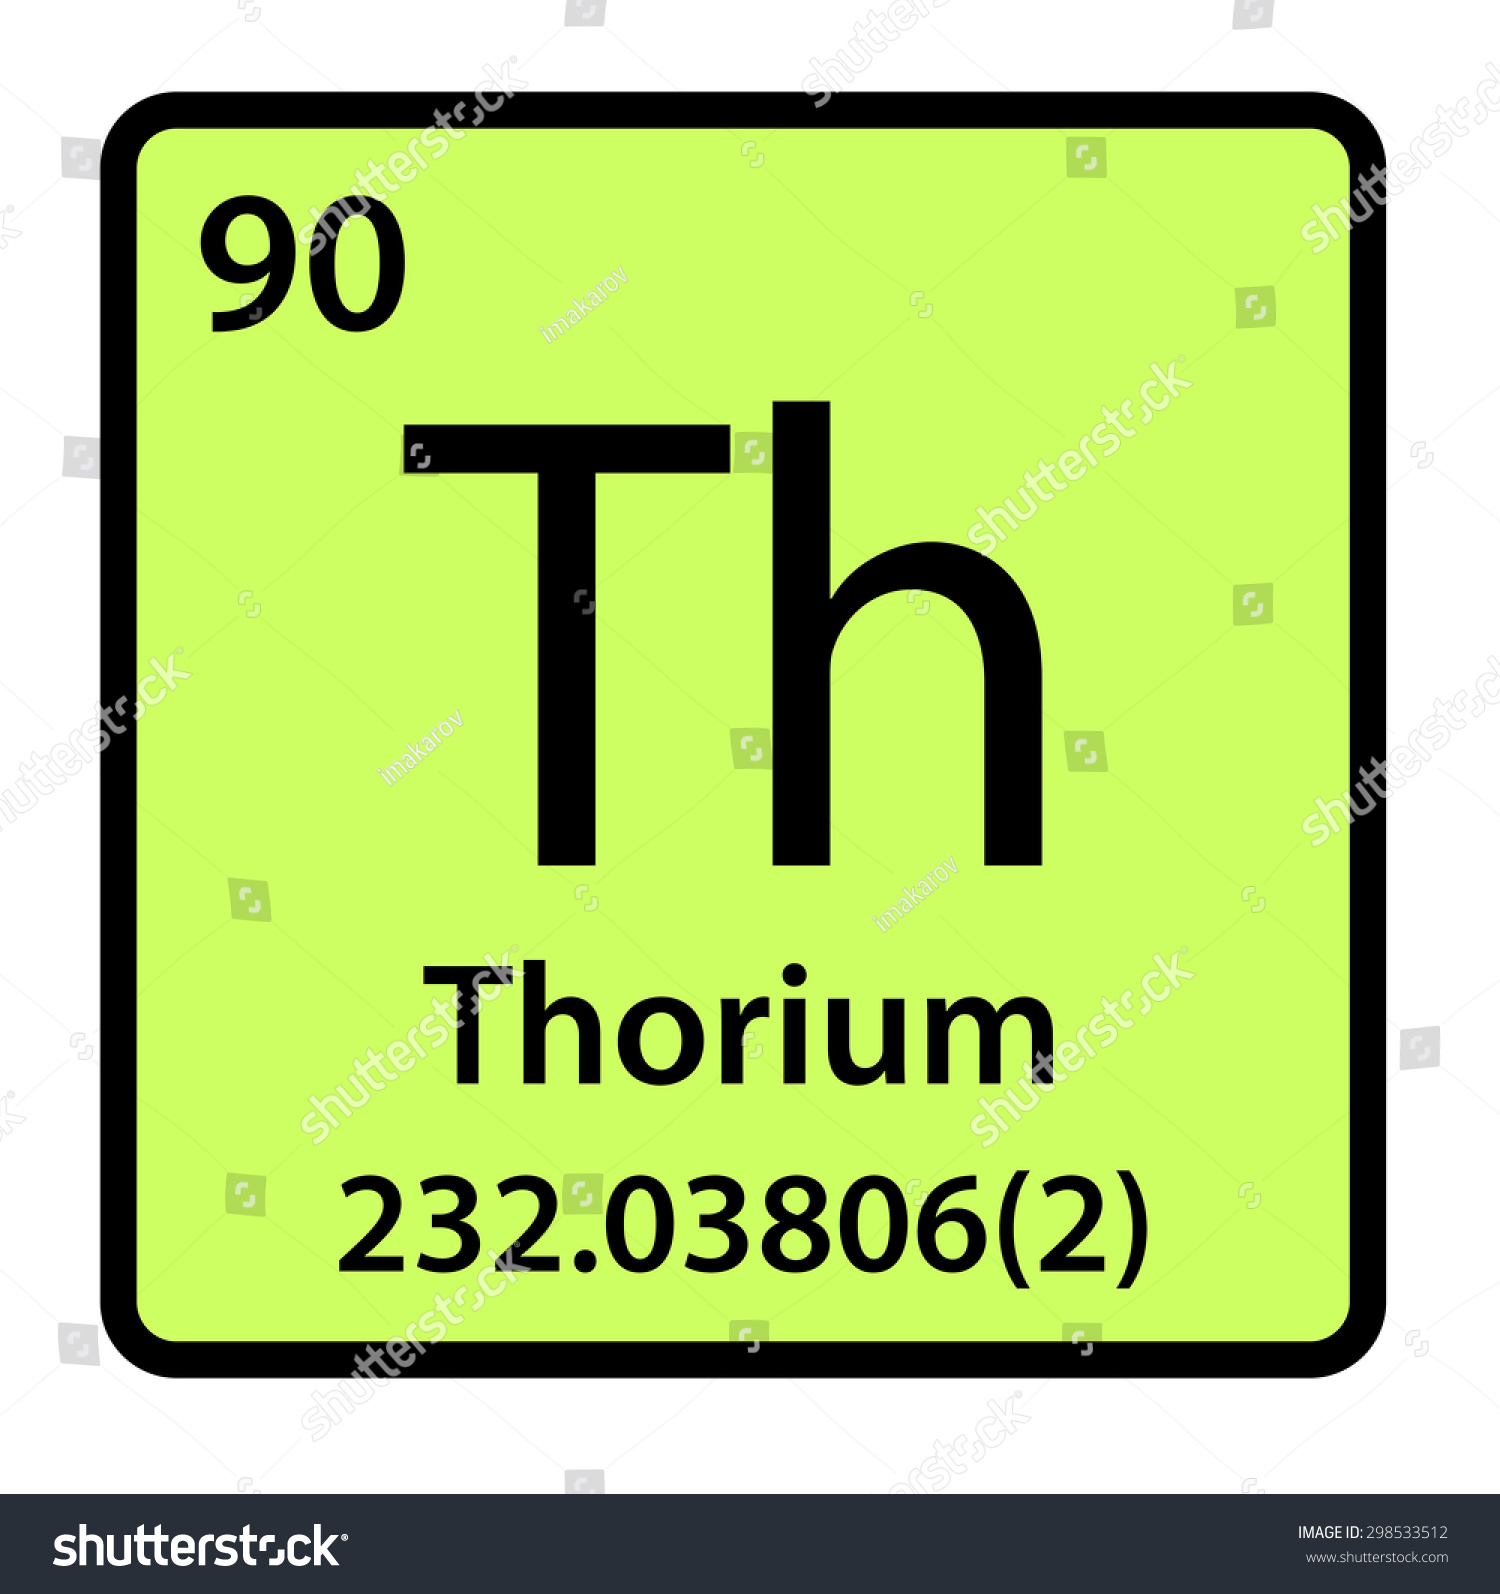 Element thorium periodic table stock illustration 298533512 element thorium of the periodic table gamestrikefo Gallery